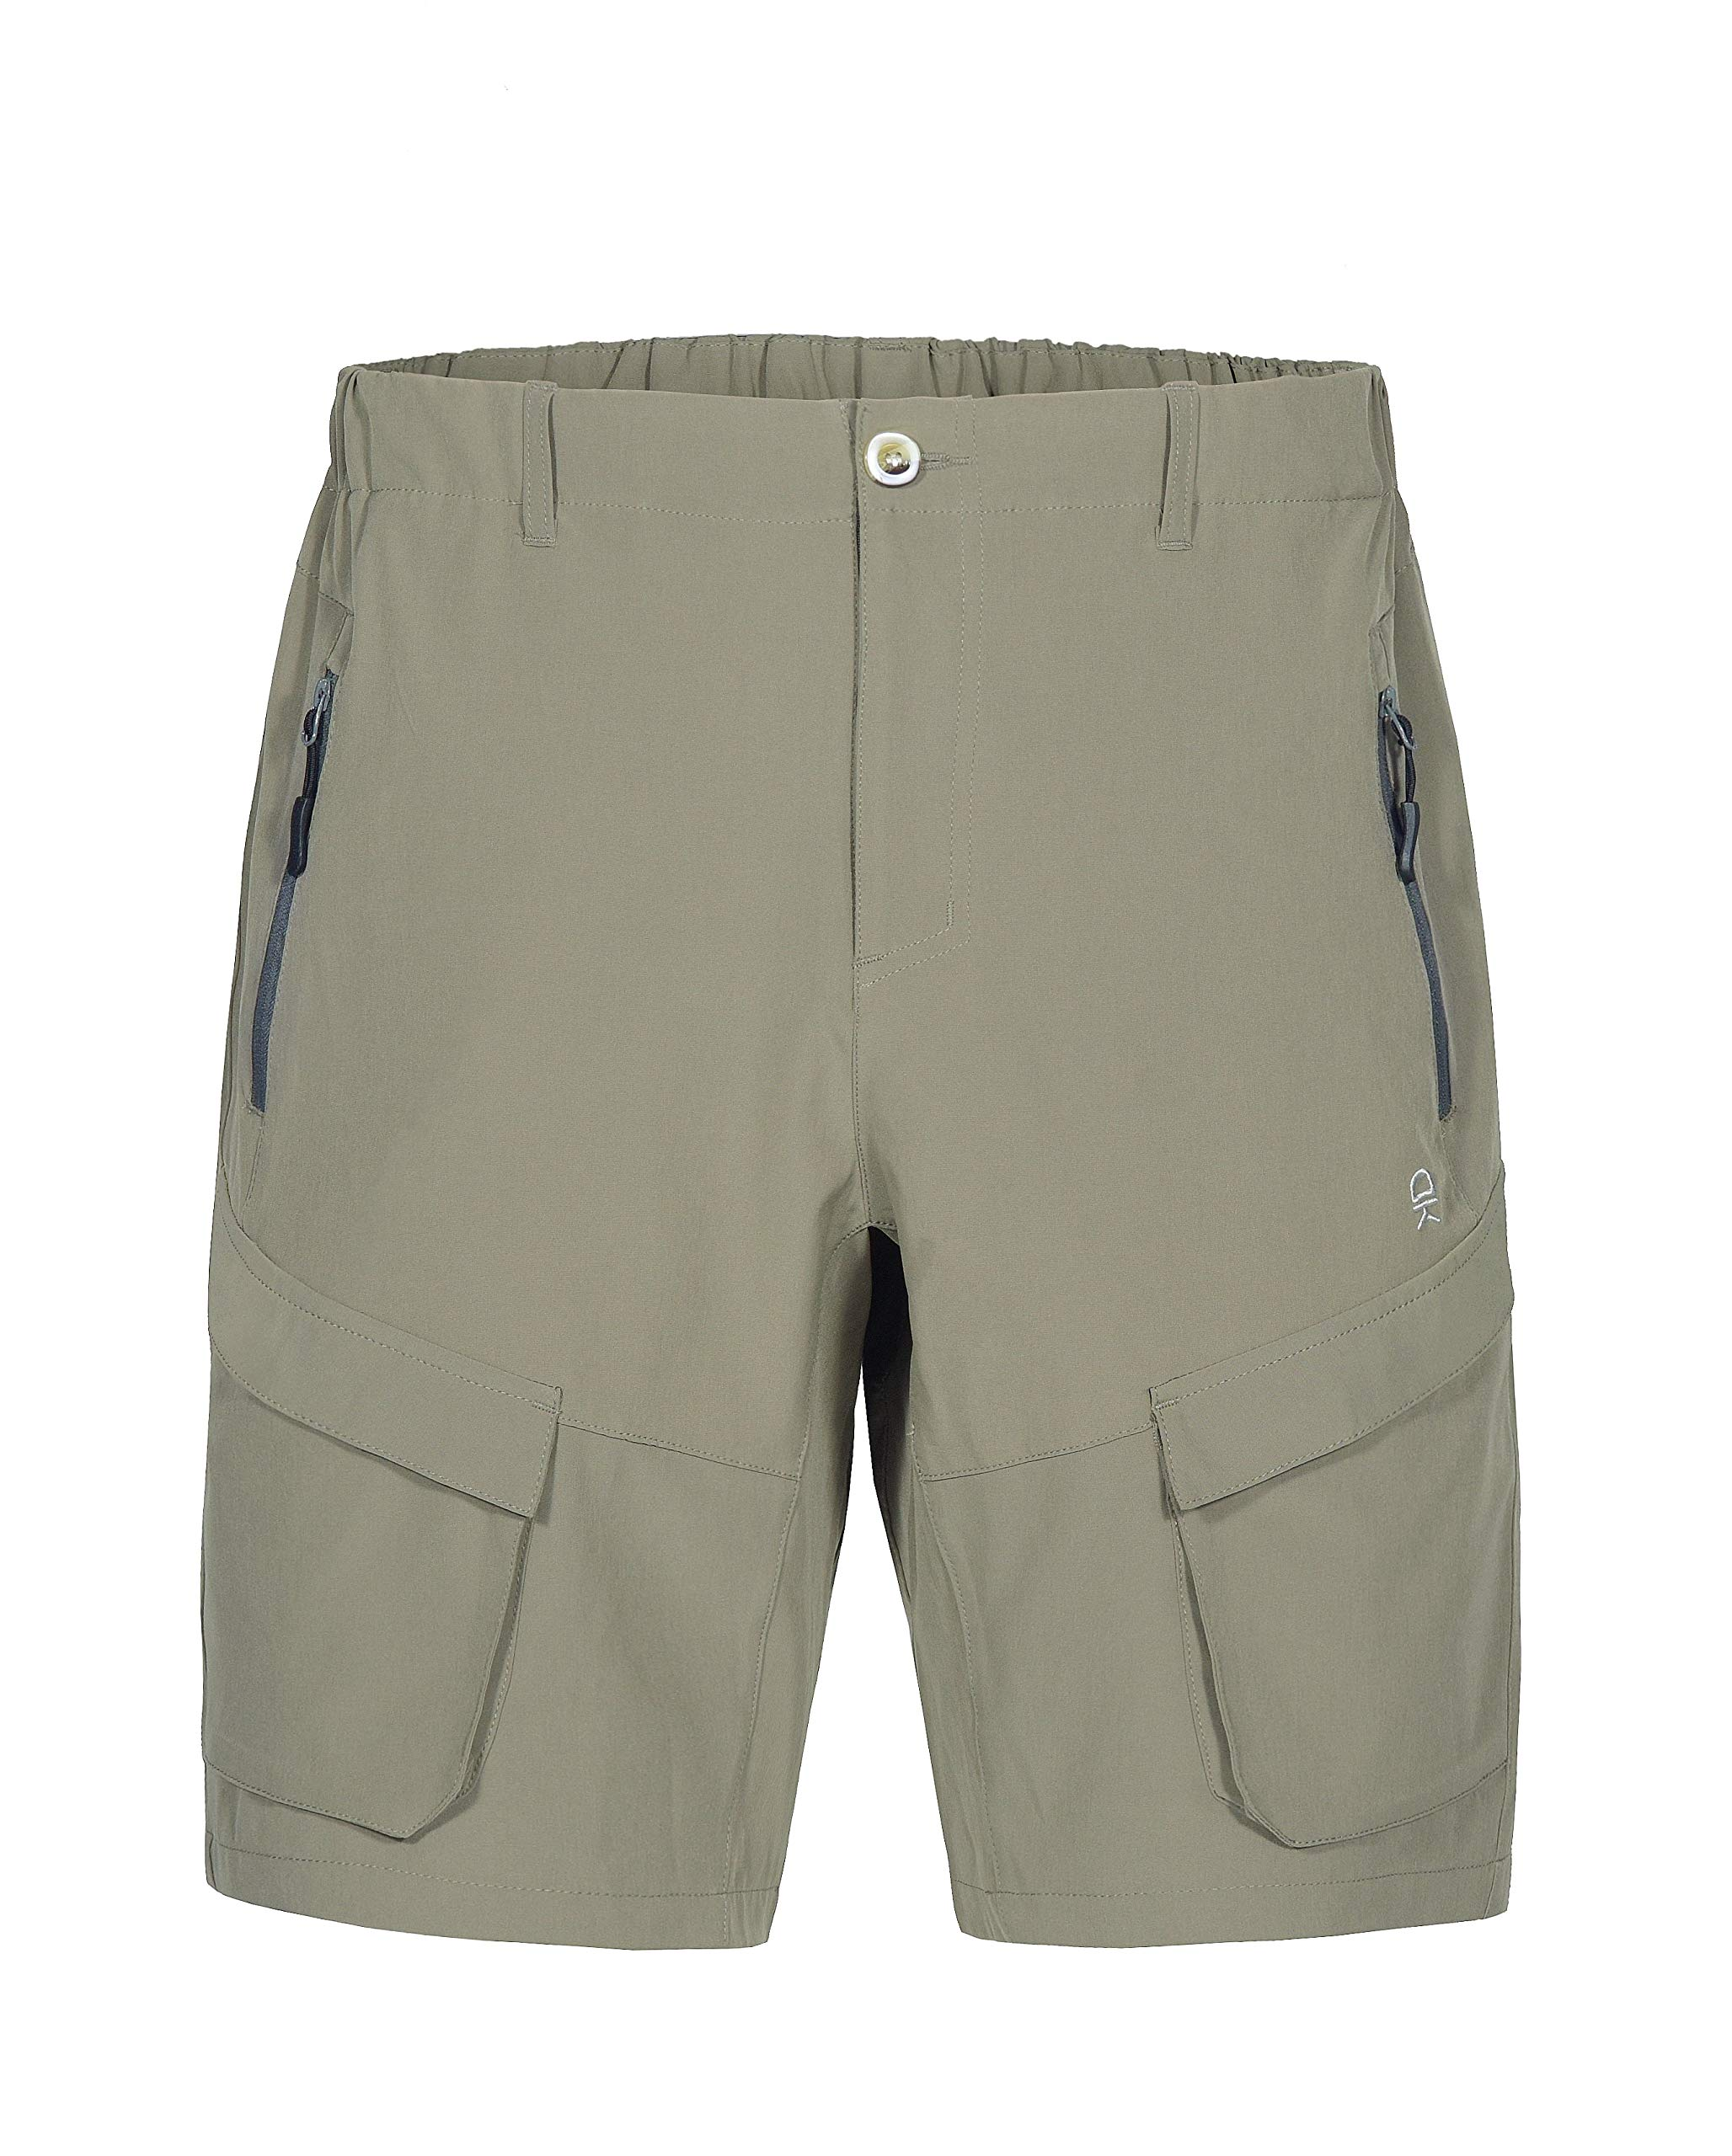 Little Donkey Andy Men's Stretch Quick Dry Cargo Shorts for Hiking, Camping, Travel Sage Size XL by Little Donkey Andy